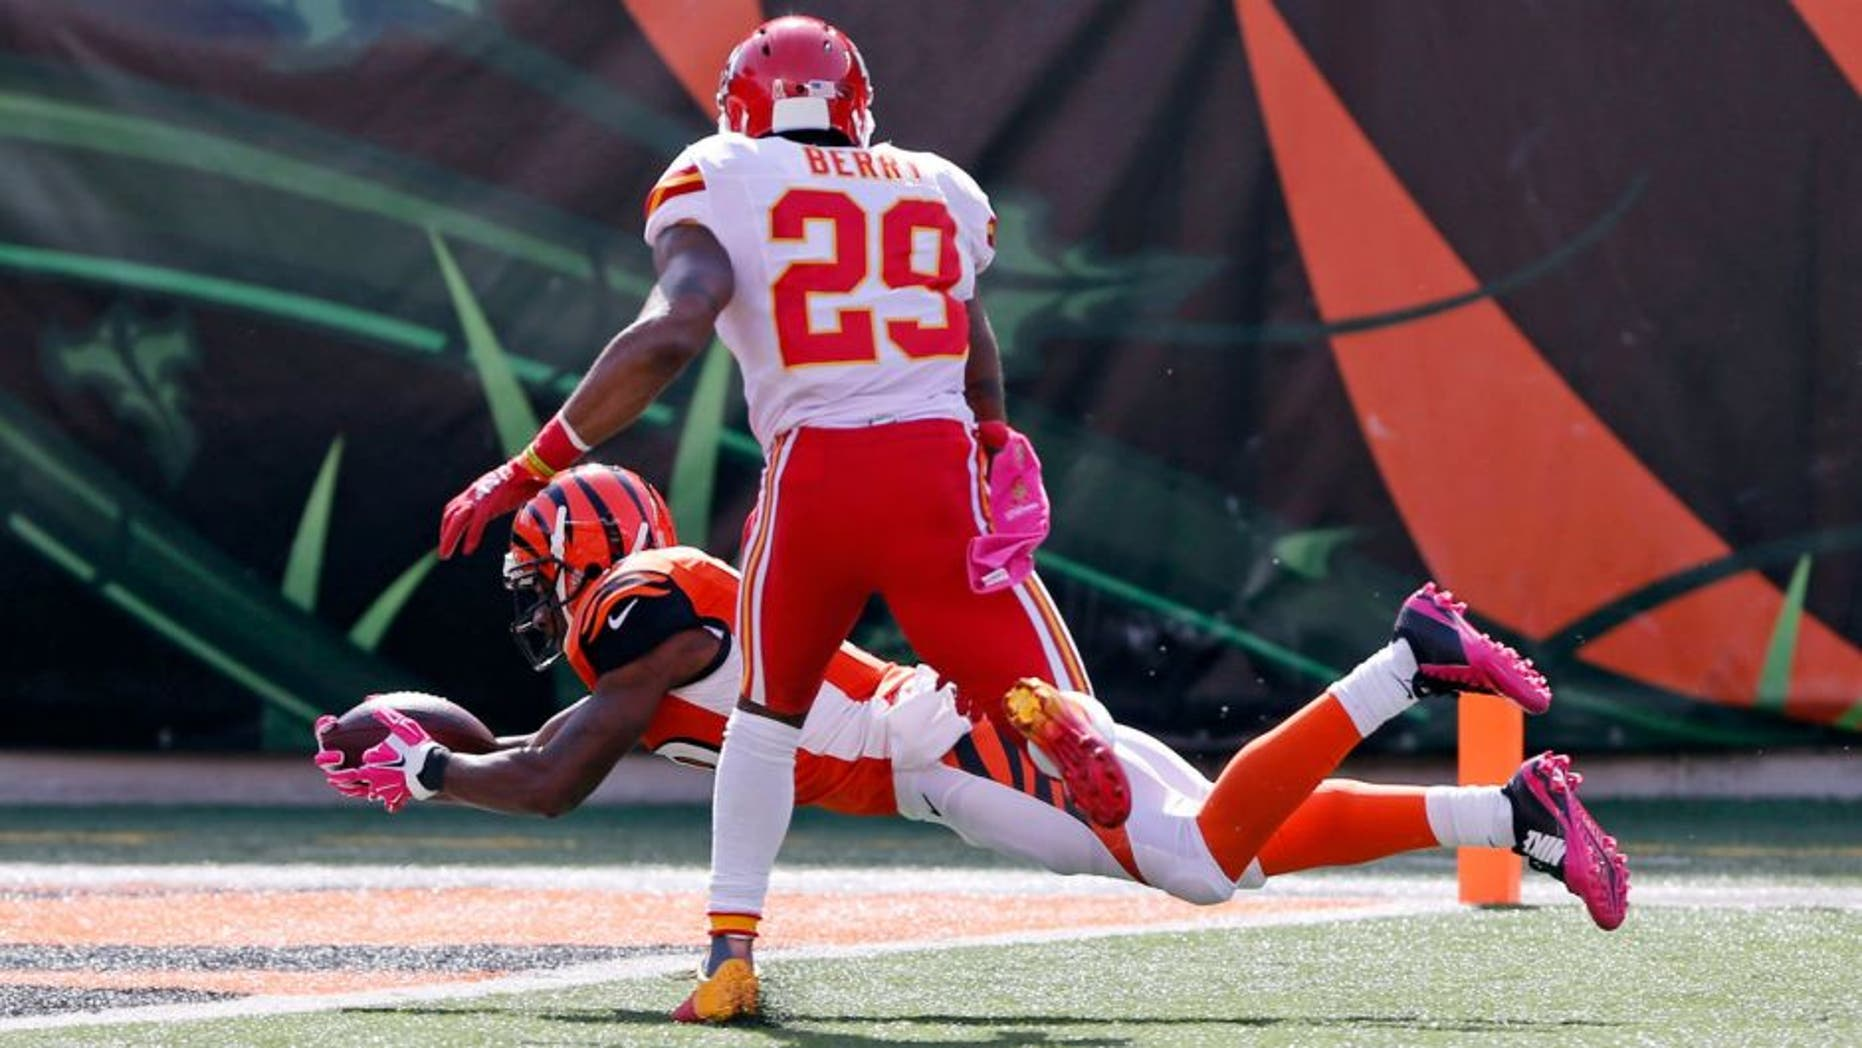 Oct 4, 2015; Cincinnati, OH, USA; Cincinnati Bengals wide receiver Brandon Tate (19) makes a catch for a touchdown on a pass from quarterback Andy Dalton (not pictured) as Kansas City Chiefs free safety Eric Berry (29) defends in the second half at Paul Brown Stadium. Mandatory Credit: Aaron Doster-USA TODAY Sports